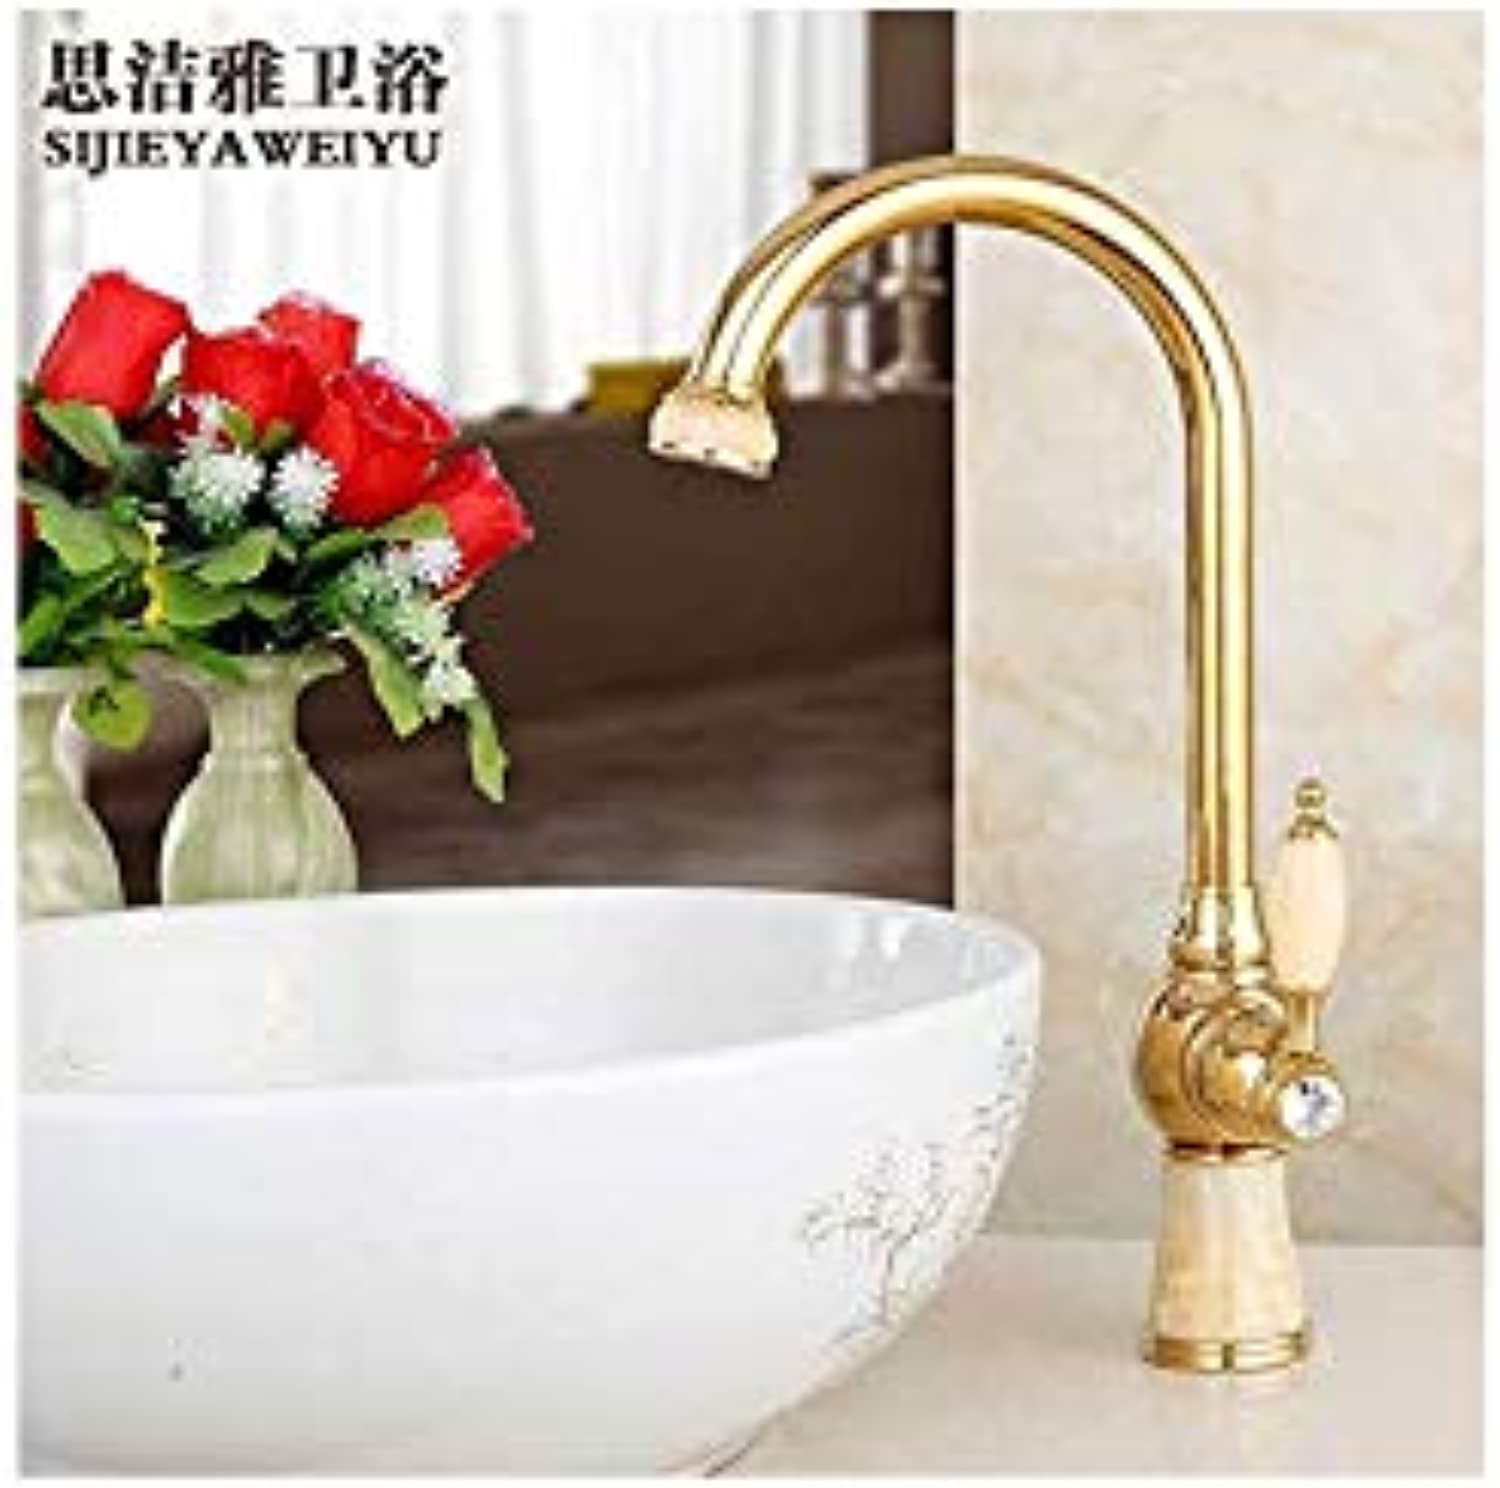 Water Tapfaucet Taps Natural Jade Copper Table Top Basin Hot and Cold Faucet Kitchen Sink Can Be redated gold Antique Faucet, Topaz gold (redary)